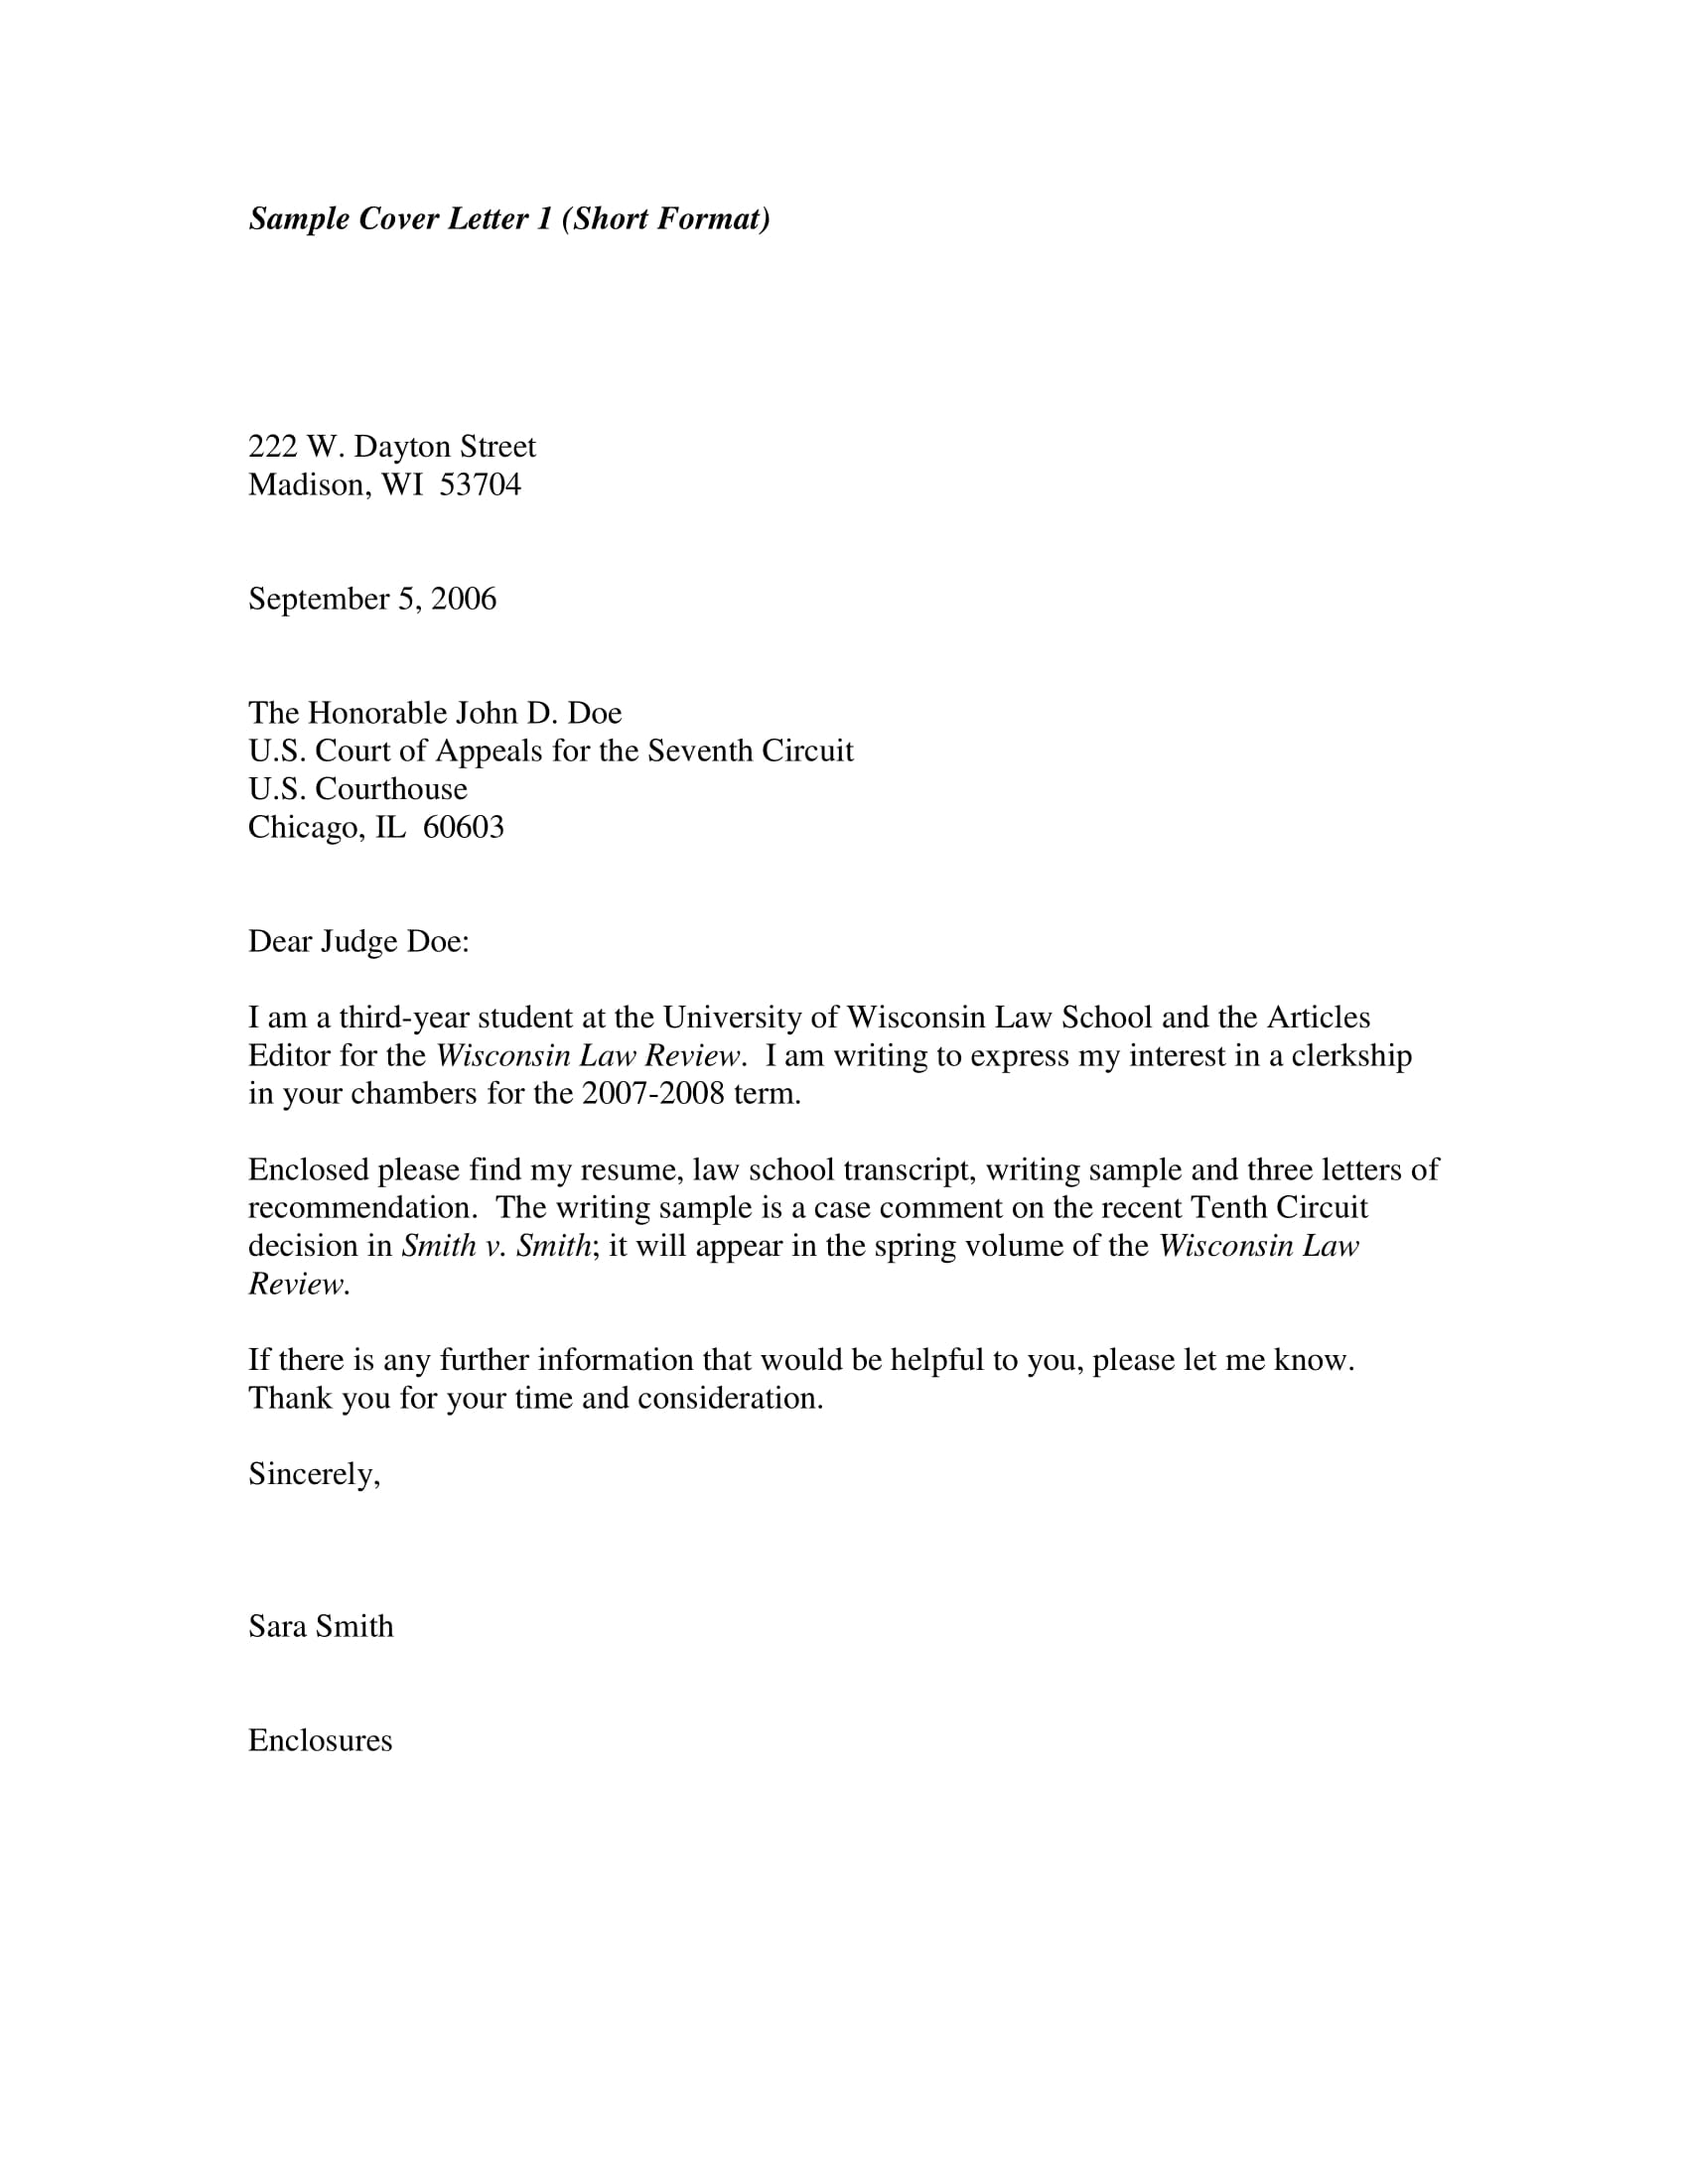 basic internship cover letter example